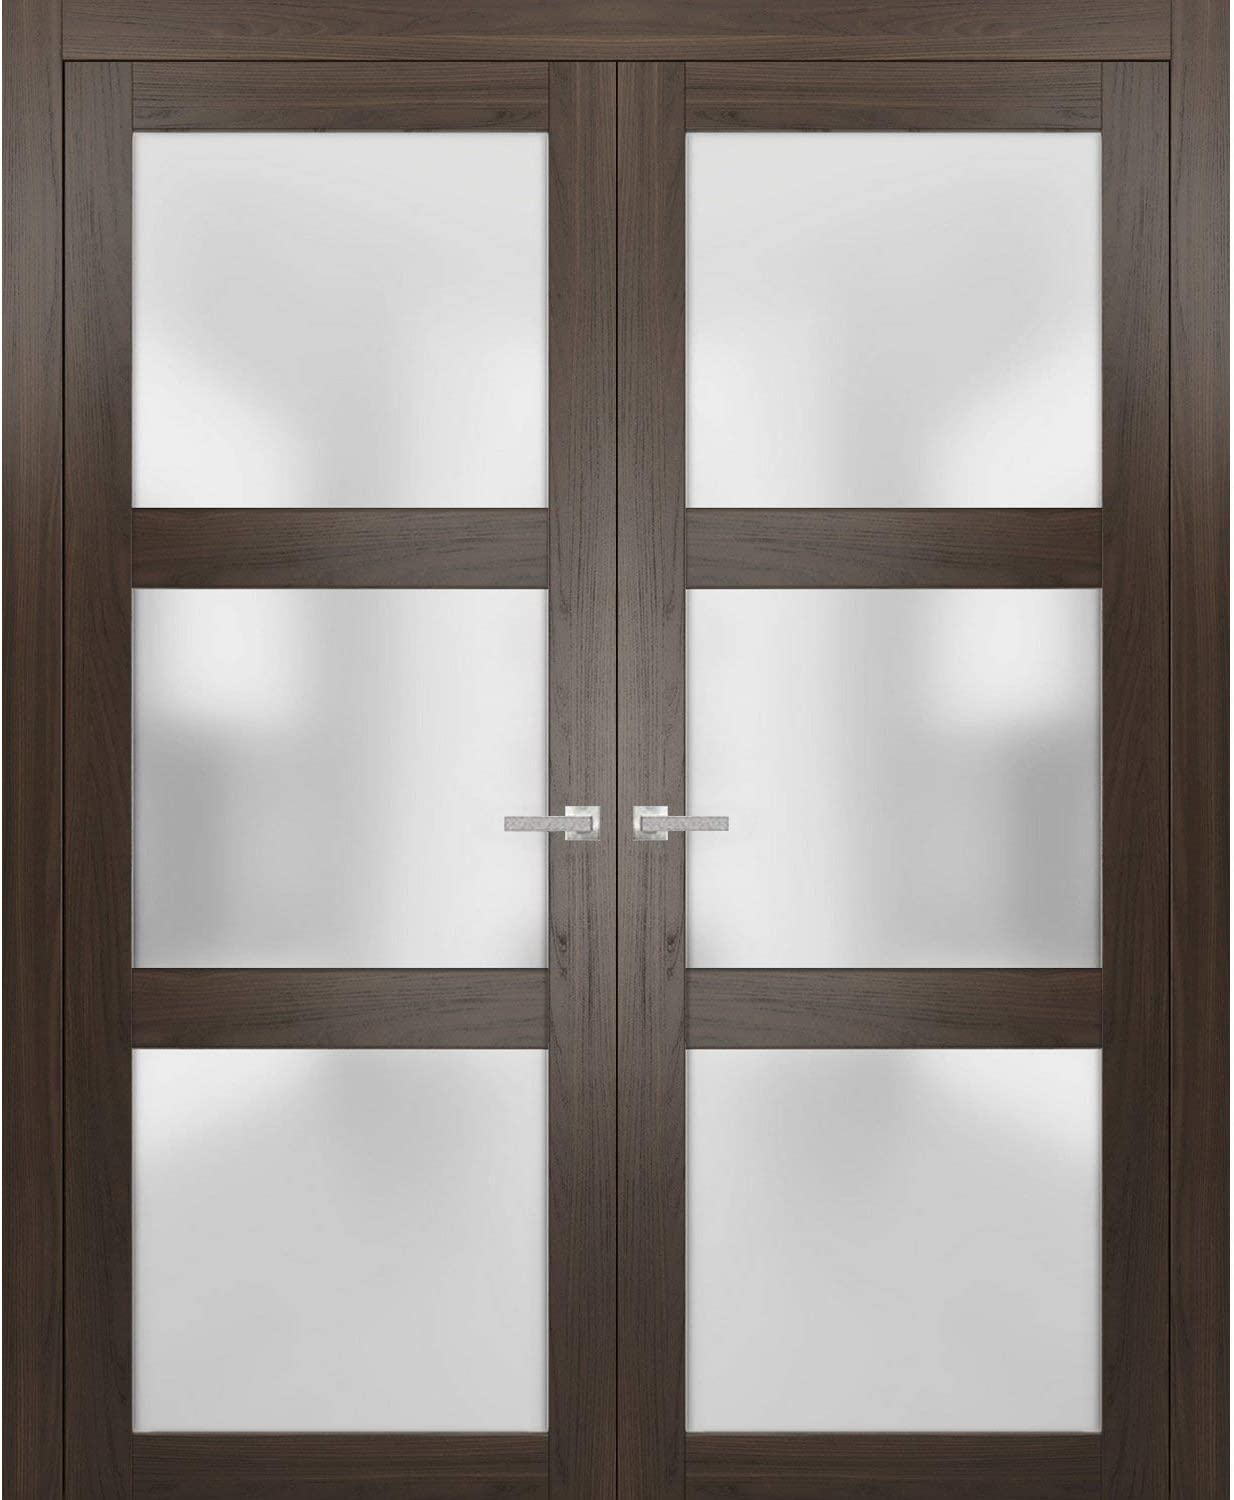 Solid French Double Doors 60 x Lucia inches Department store Free shipping 2 80 Glass Frosted